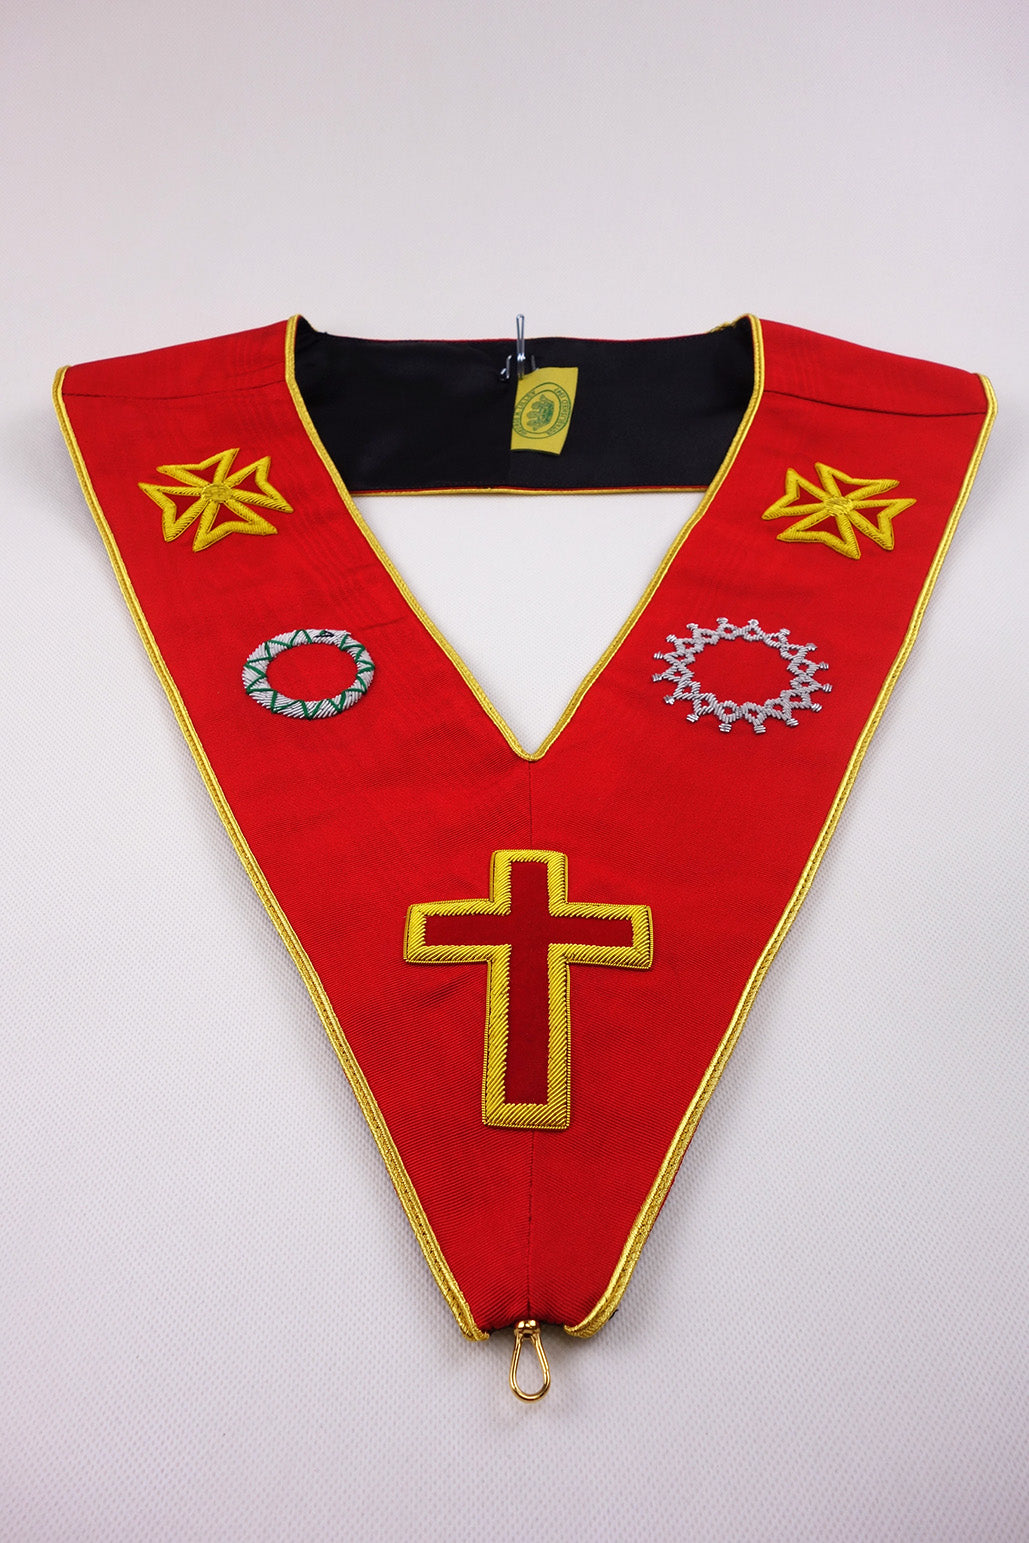 Australian Constitution Rose Croix 18th Degree Collar